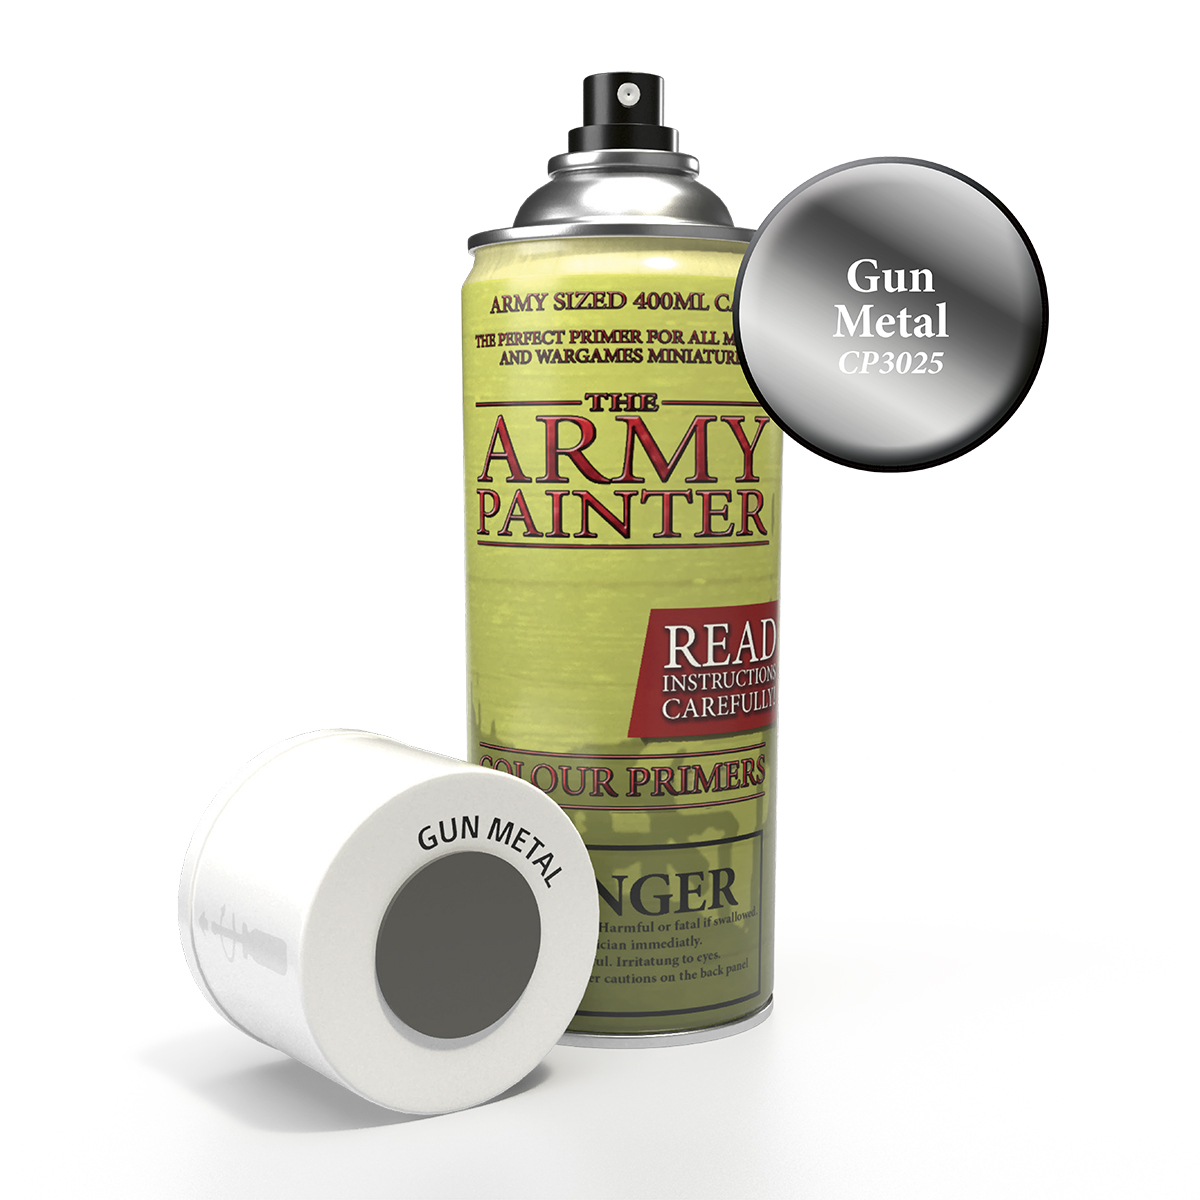 Army Painter Colour Primer - Gun Metal